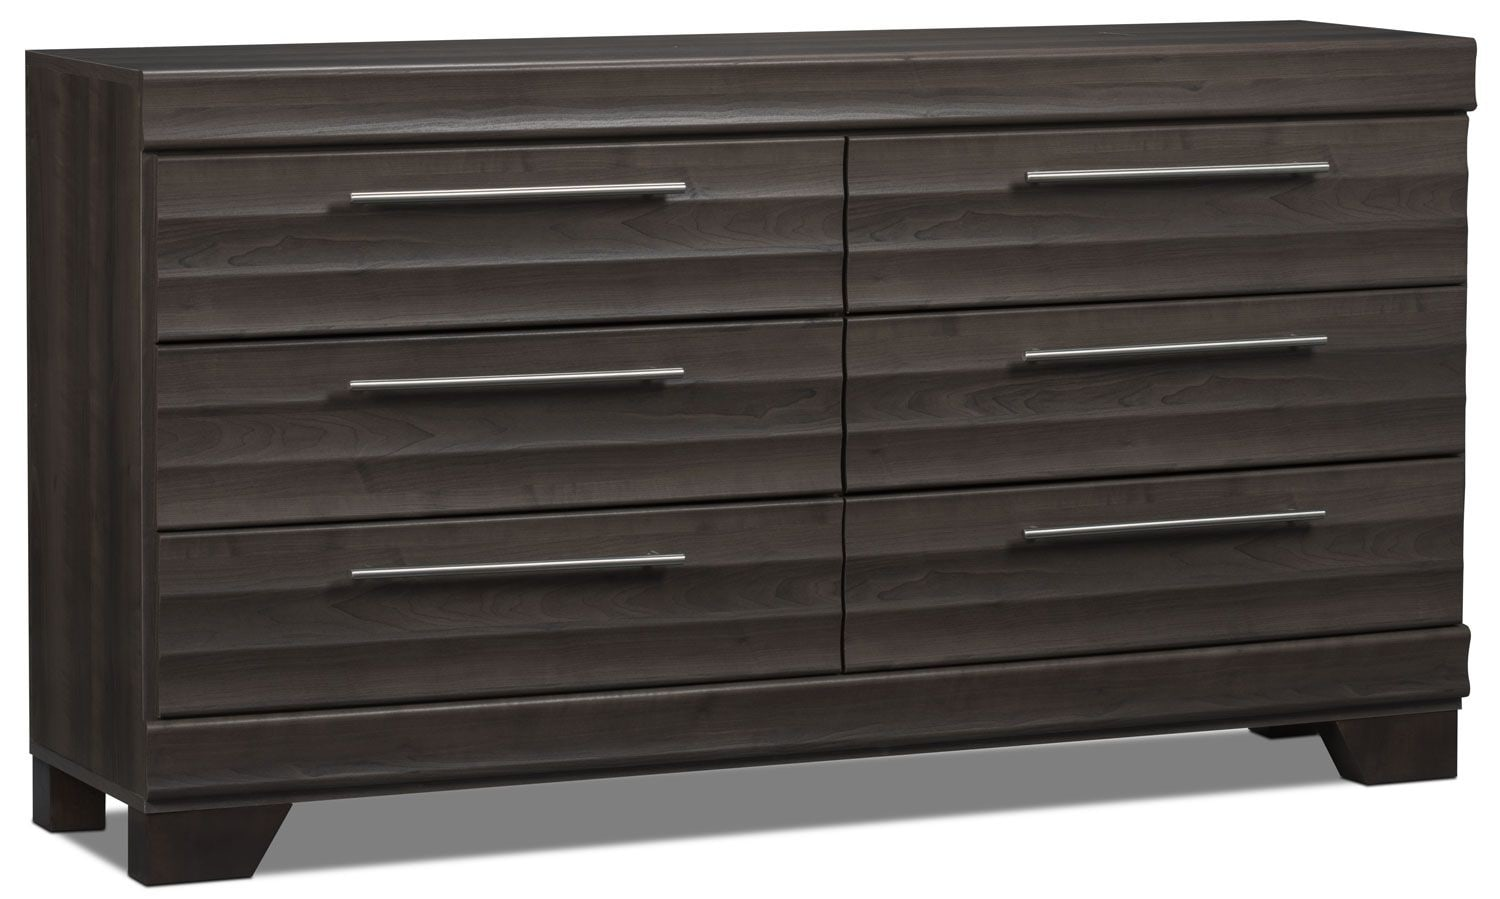 Bedroom Furniture - Olivia Dresser - Grey